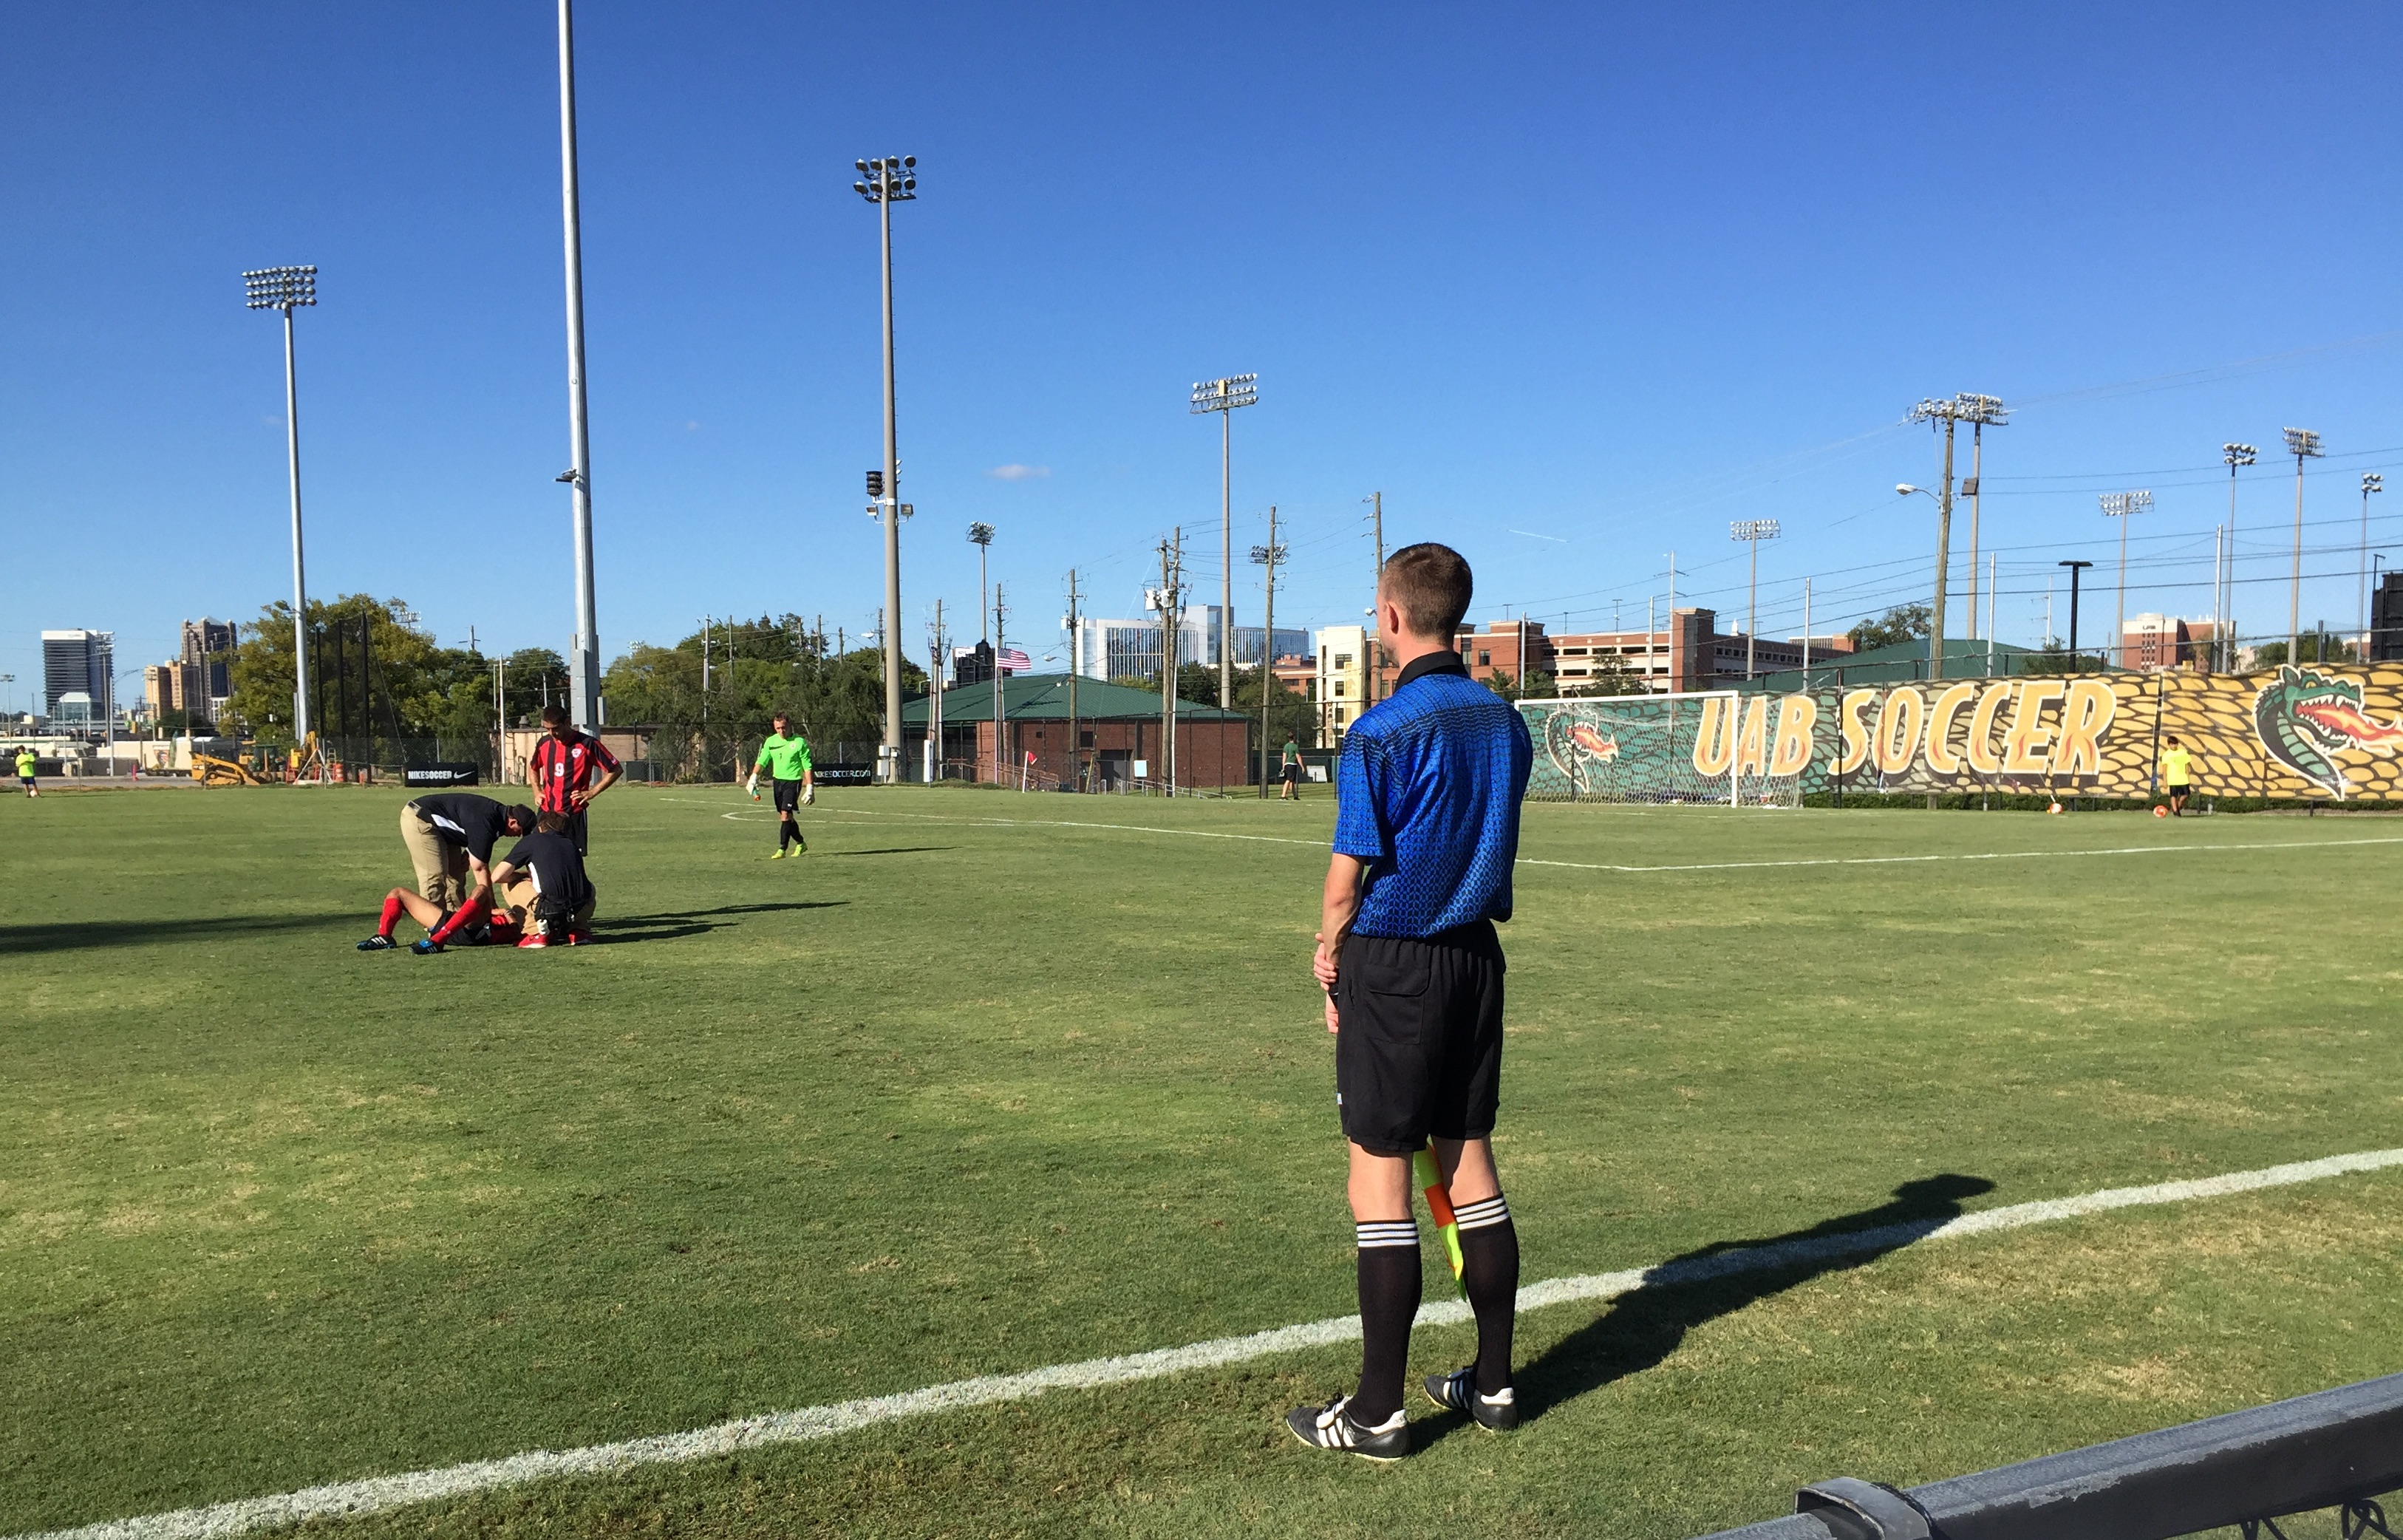 Caption: In addition to balancing academics and athletics, college athletes also face the challenge of injury on the field of play, like this Gardner-Webb soccer player in a game at UAB., Credit: Dan Carsen